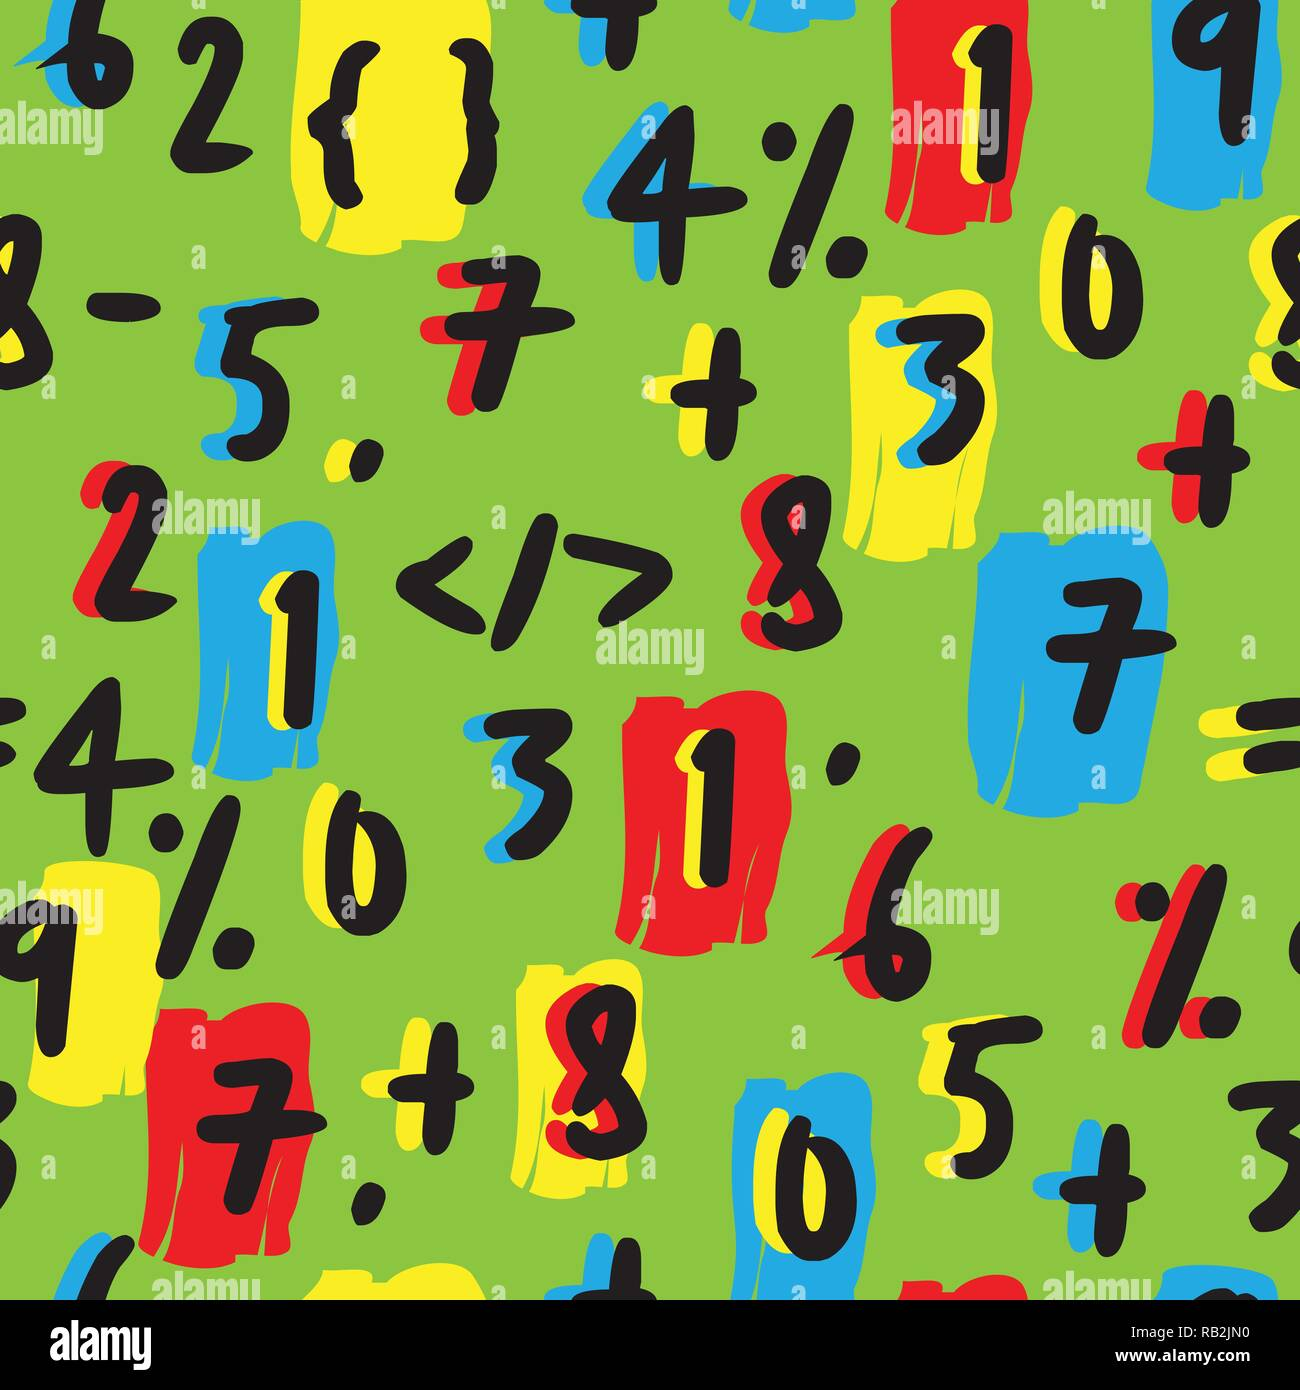 Colorful Mathematical Numbers Hand Drawn Seamless Pattern on Green - Stock Image